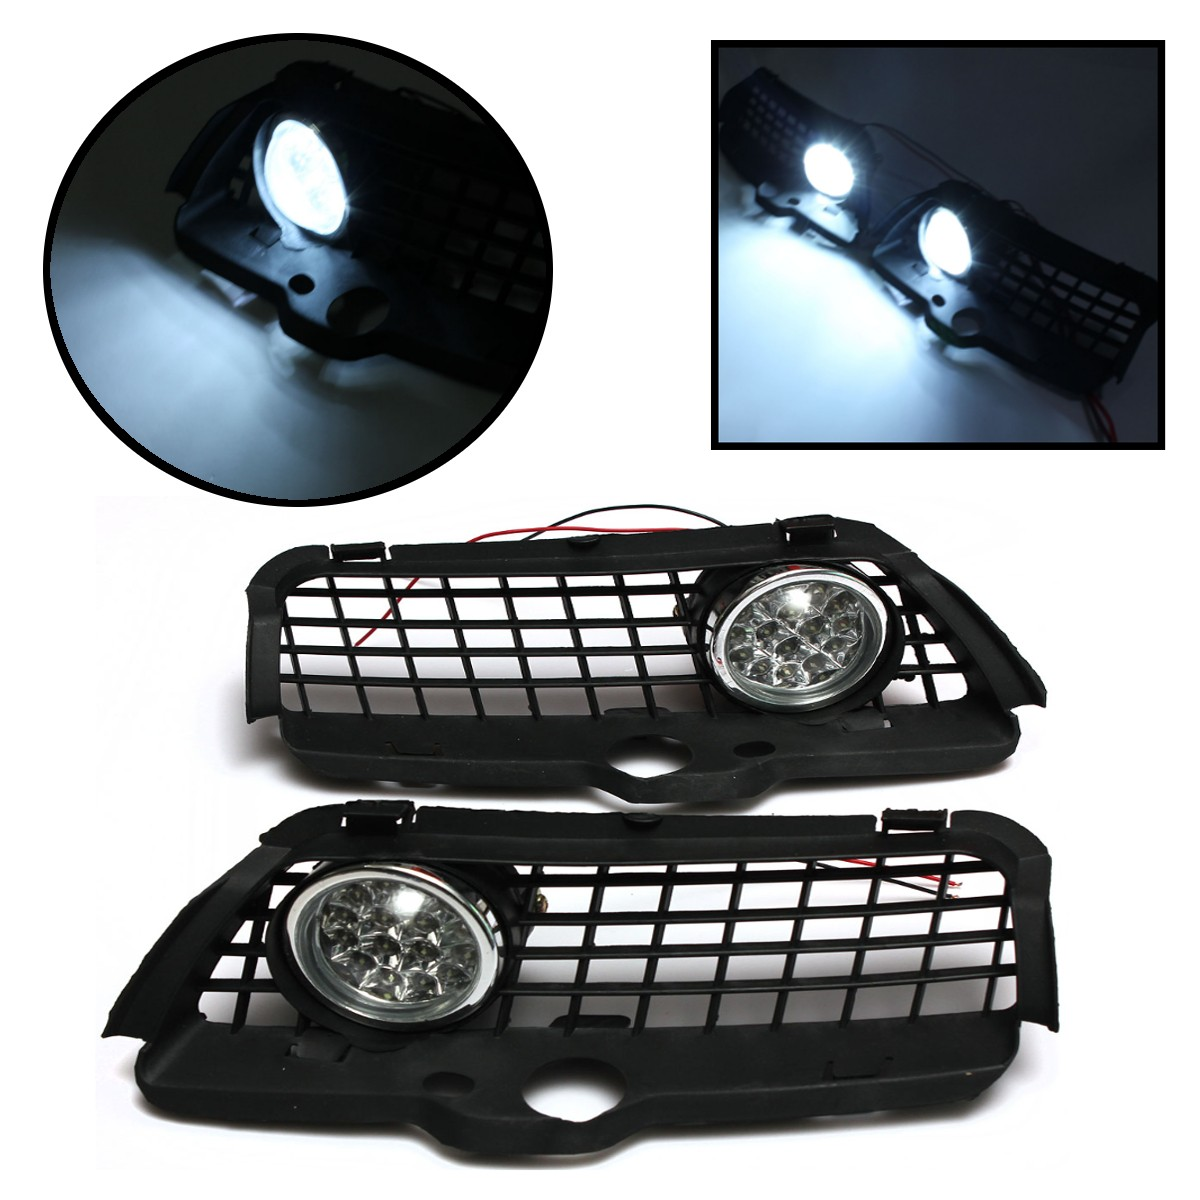 2016 Newest 170703248756 6000K LED FOG LIGHT LAMP FRONT LOWER GRILL KIT FOR VW/MK3/GOLF 92-98 runmade for 2010 vw transporter t6 t5 before facelift lower bumper grill fog cover fog light lamp set left